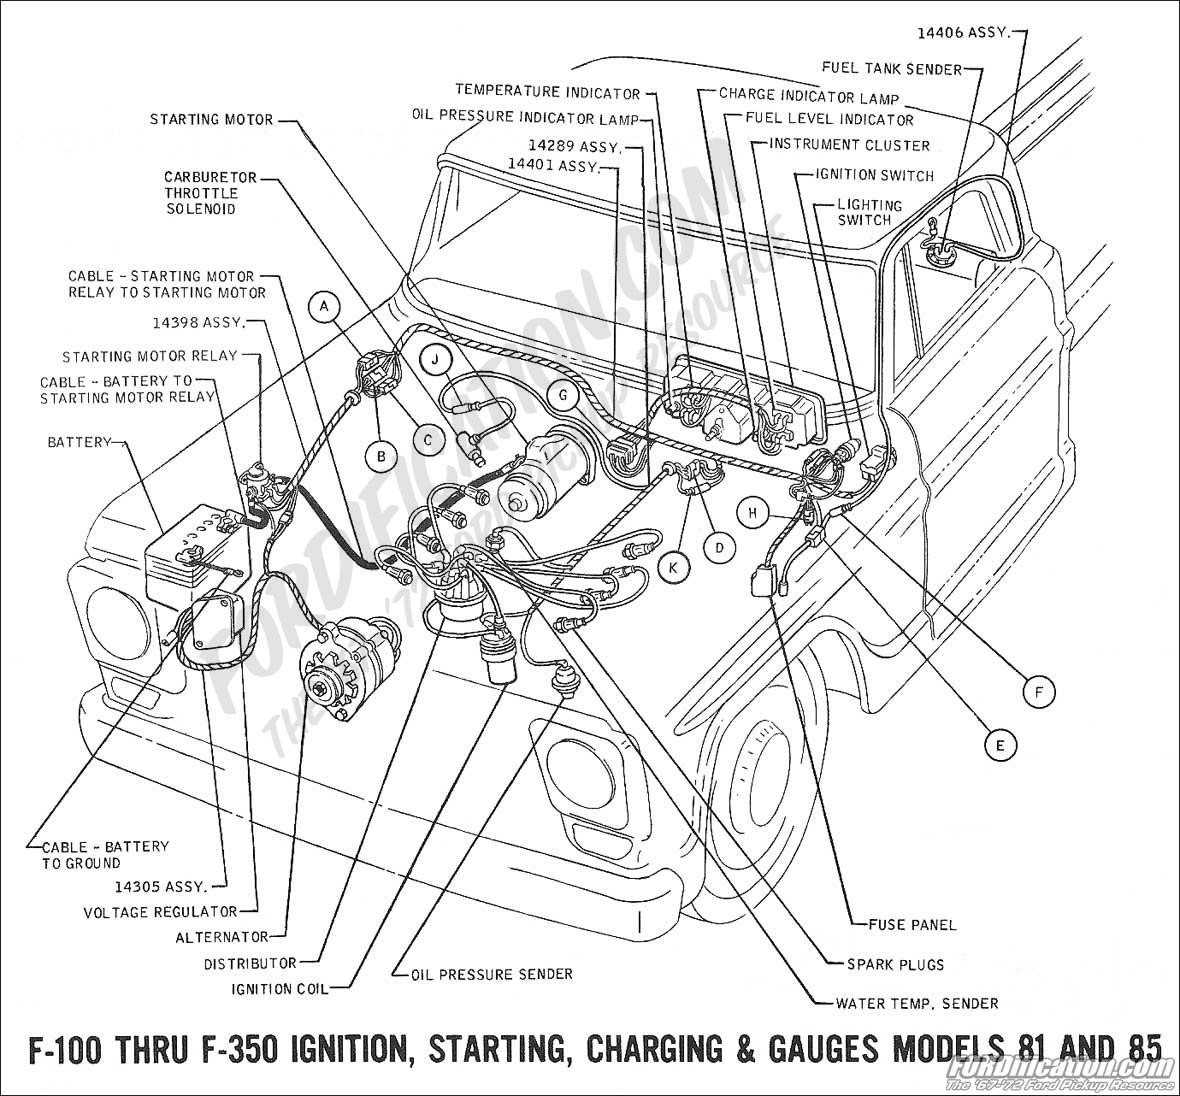 1972 Ford F100 Ke Light Wiring Diagram on 68 chevelle wiring diagram